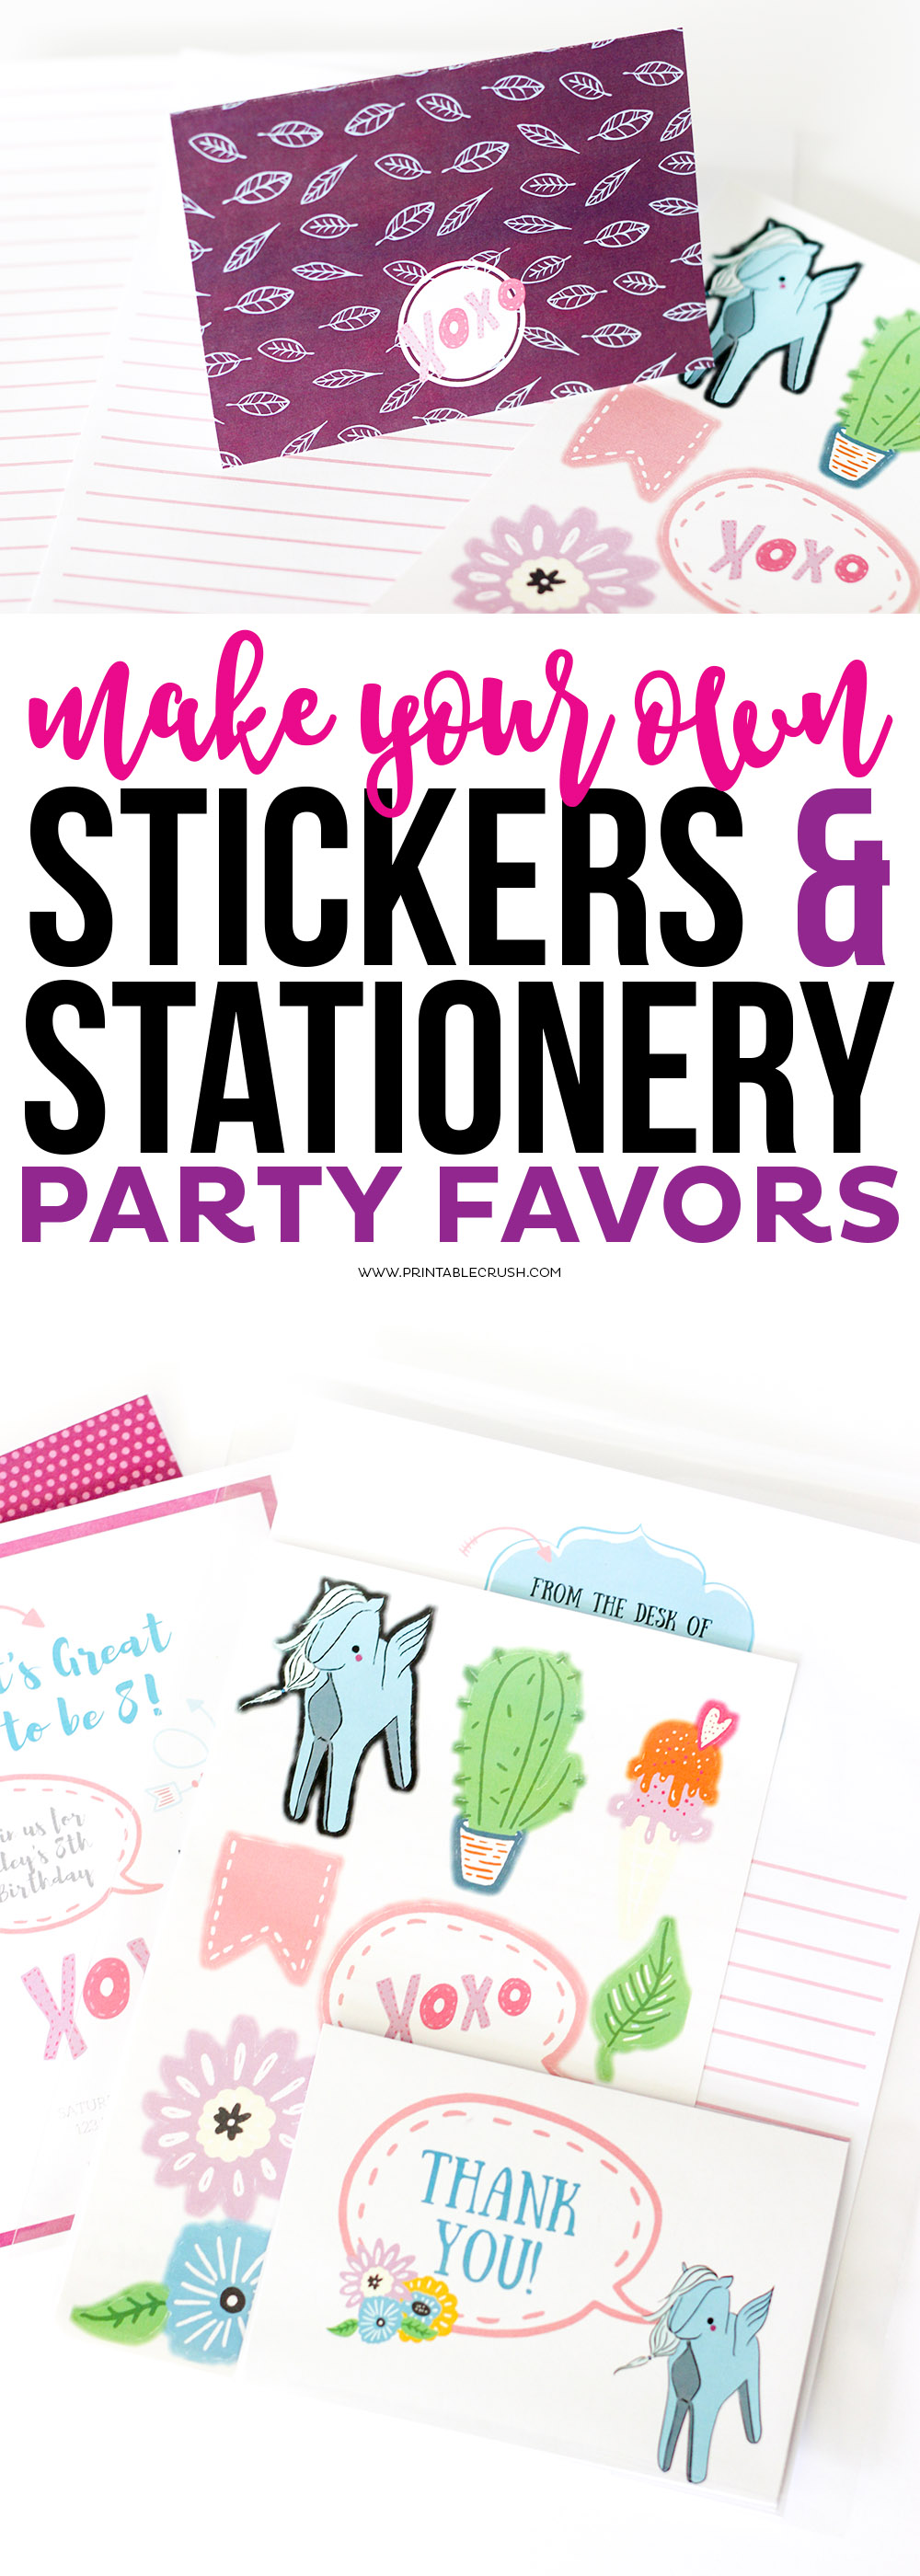 Make your own stickers collage with stickers and stationary